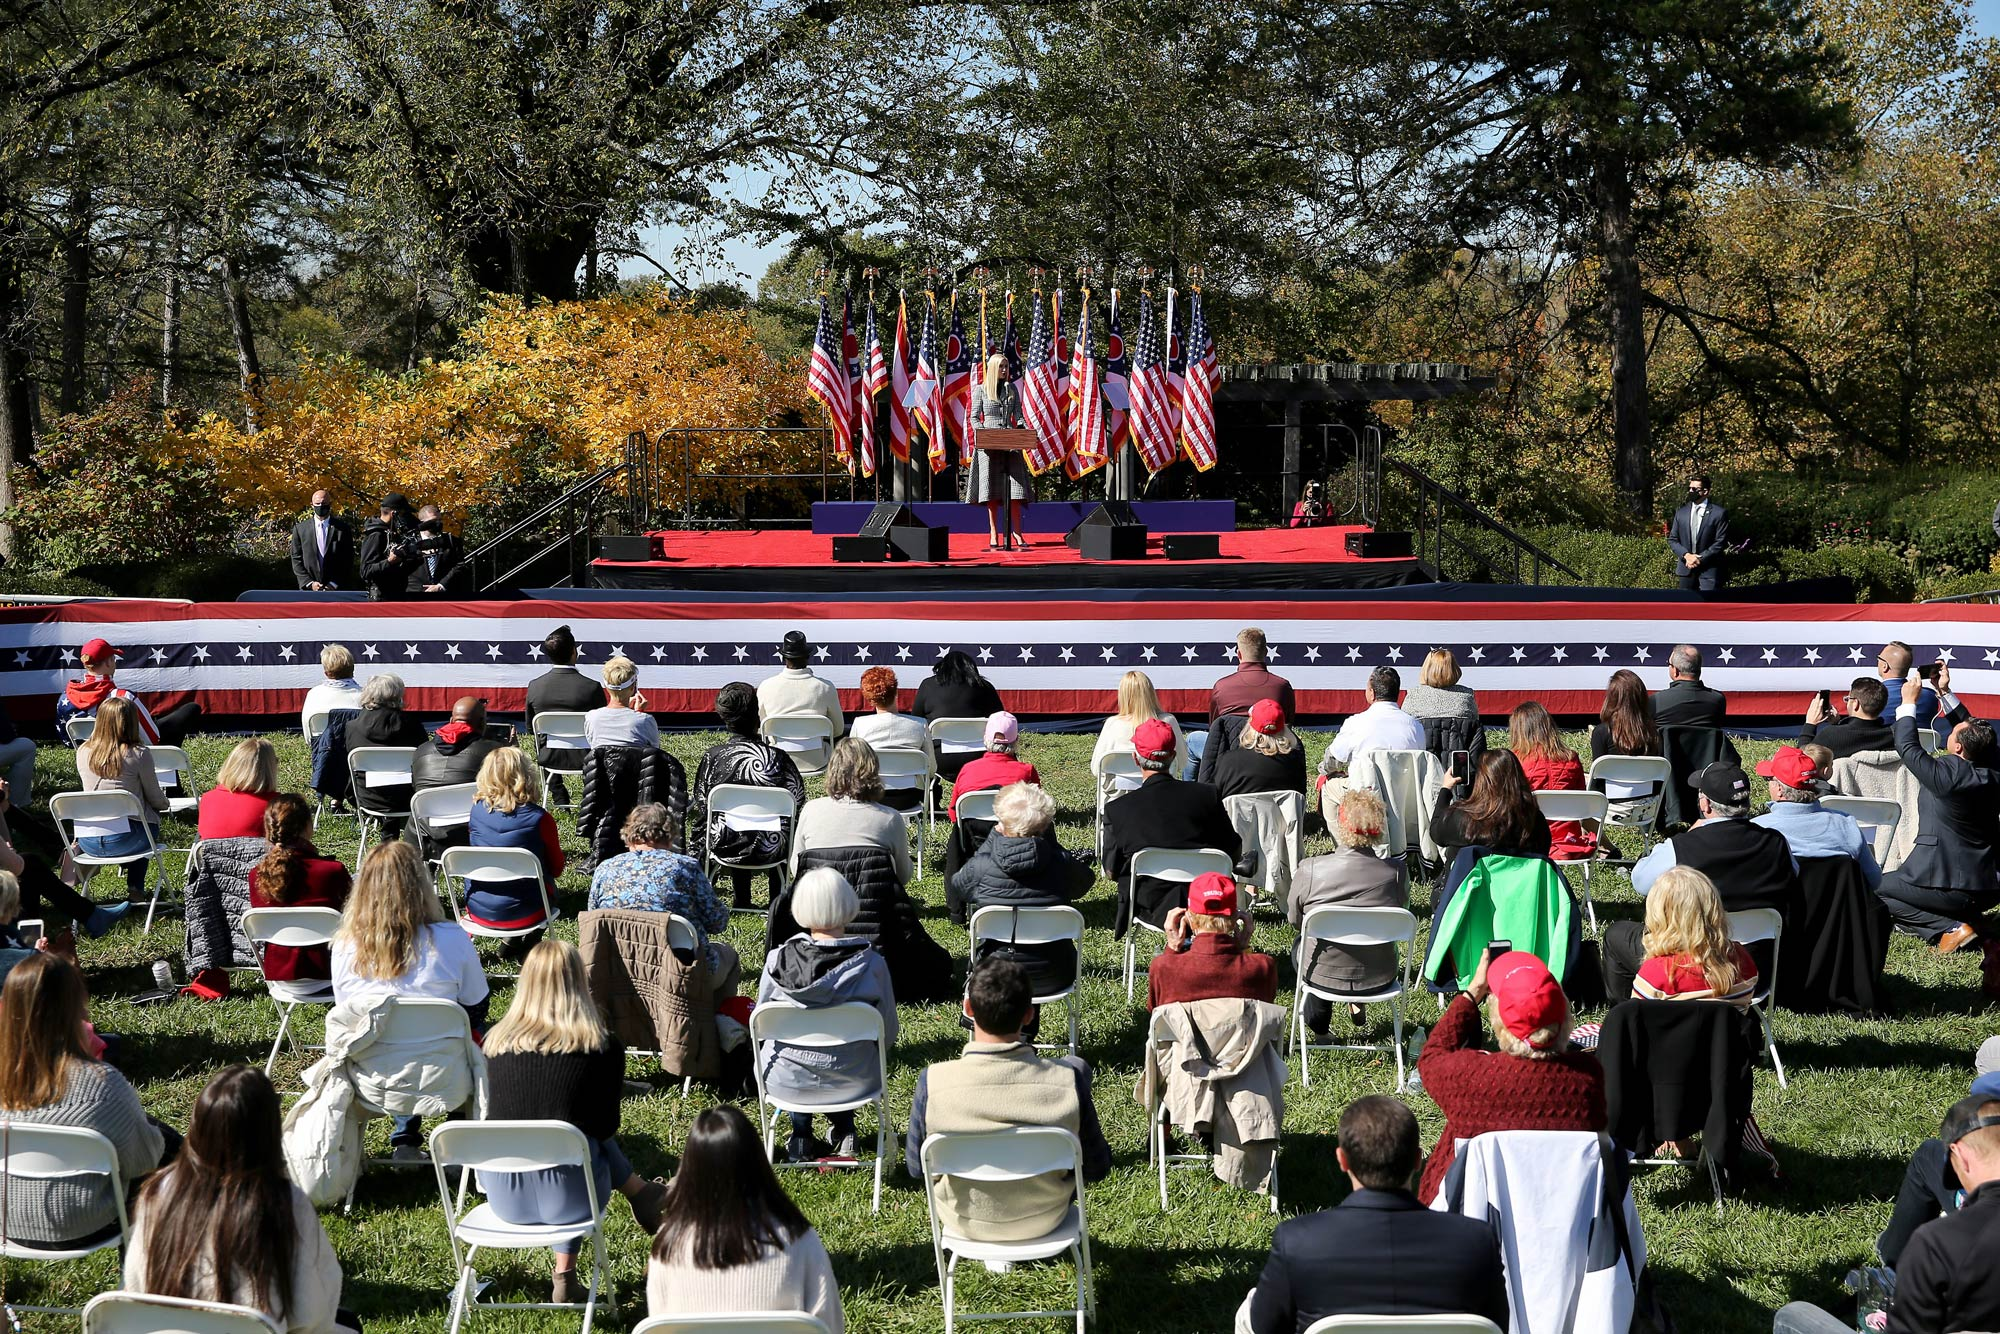 Ivanka Trump speaks at a campaign rally on October 16 at Ault Park in Cincinnati, Ohio.